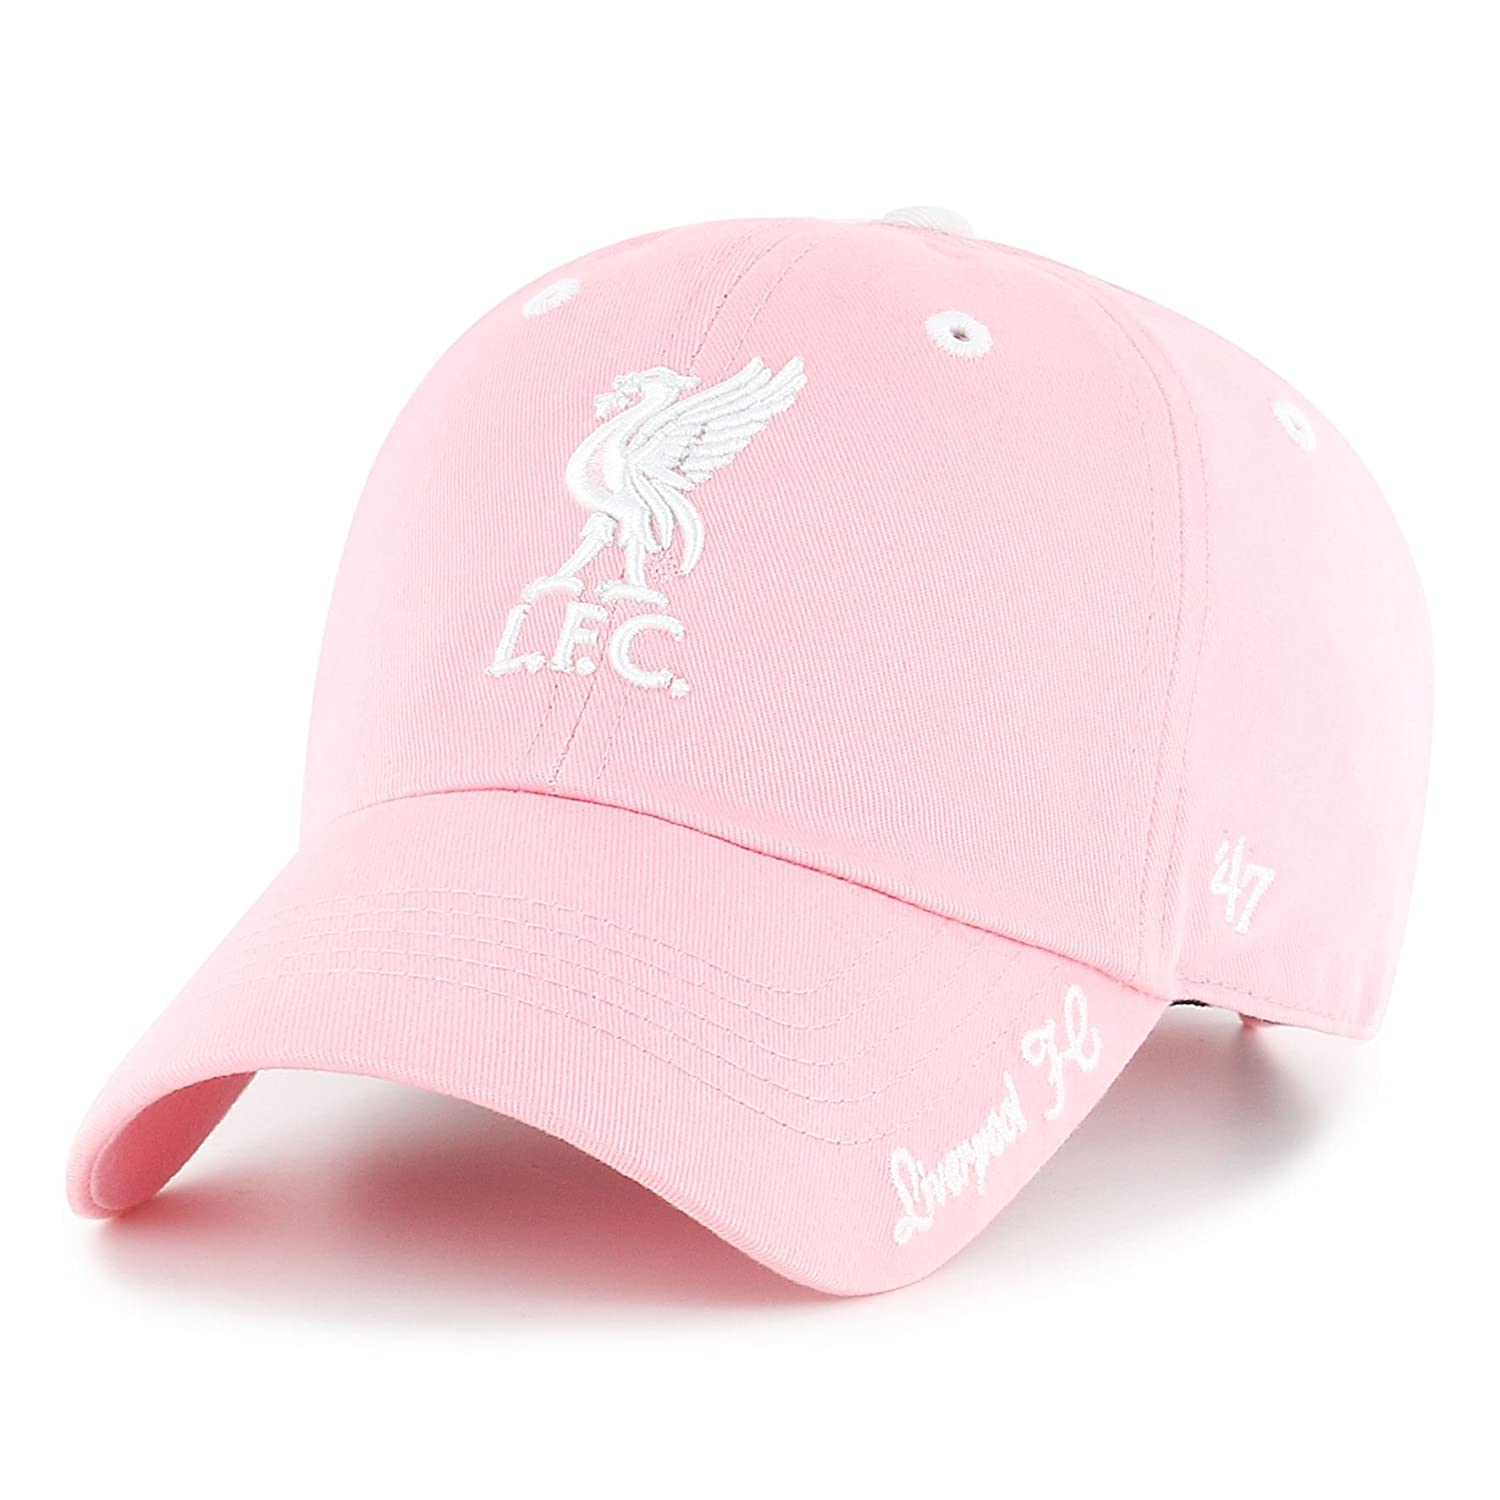 8c9a0e0d432  47 Autumn-Winter 2017 Kids Girls Pink Clean Up Cap Liverpool FC LFC  Official Store  Amazon.co.uk  Clothing